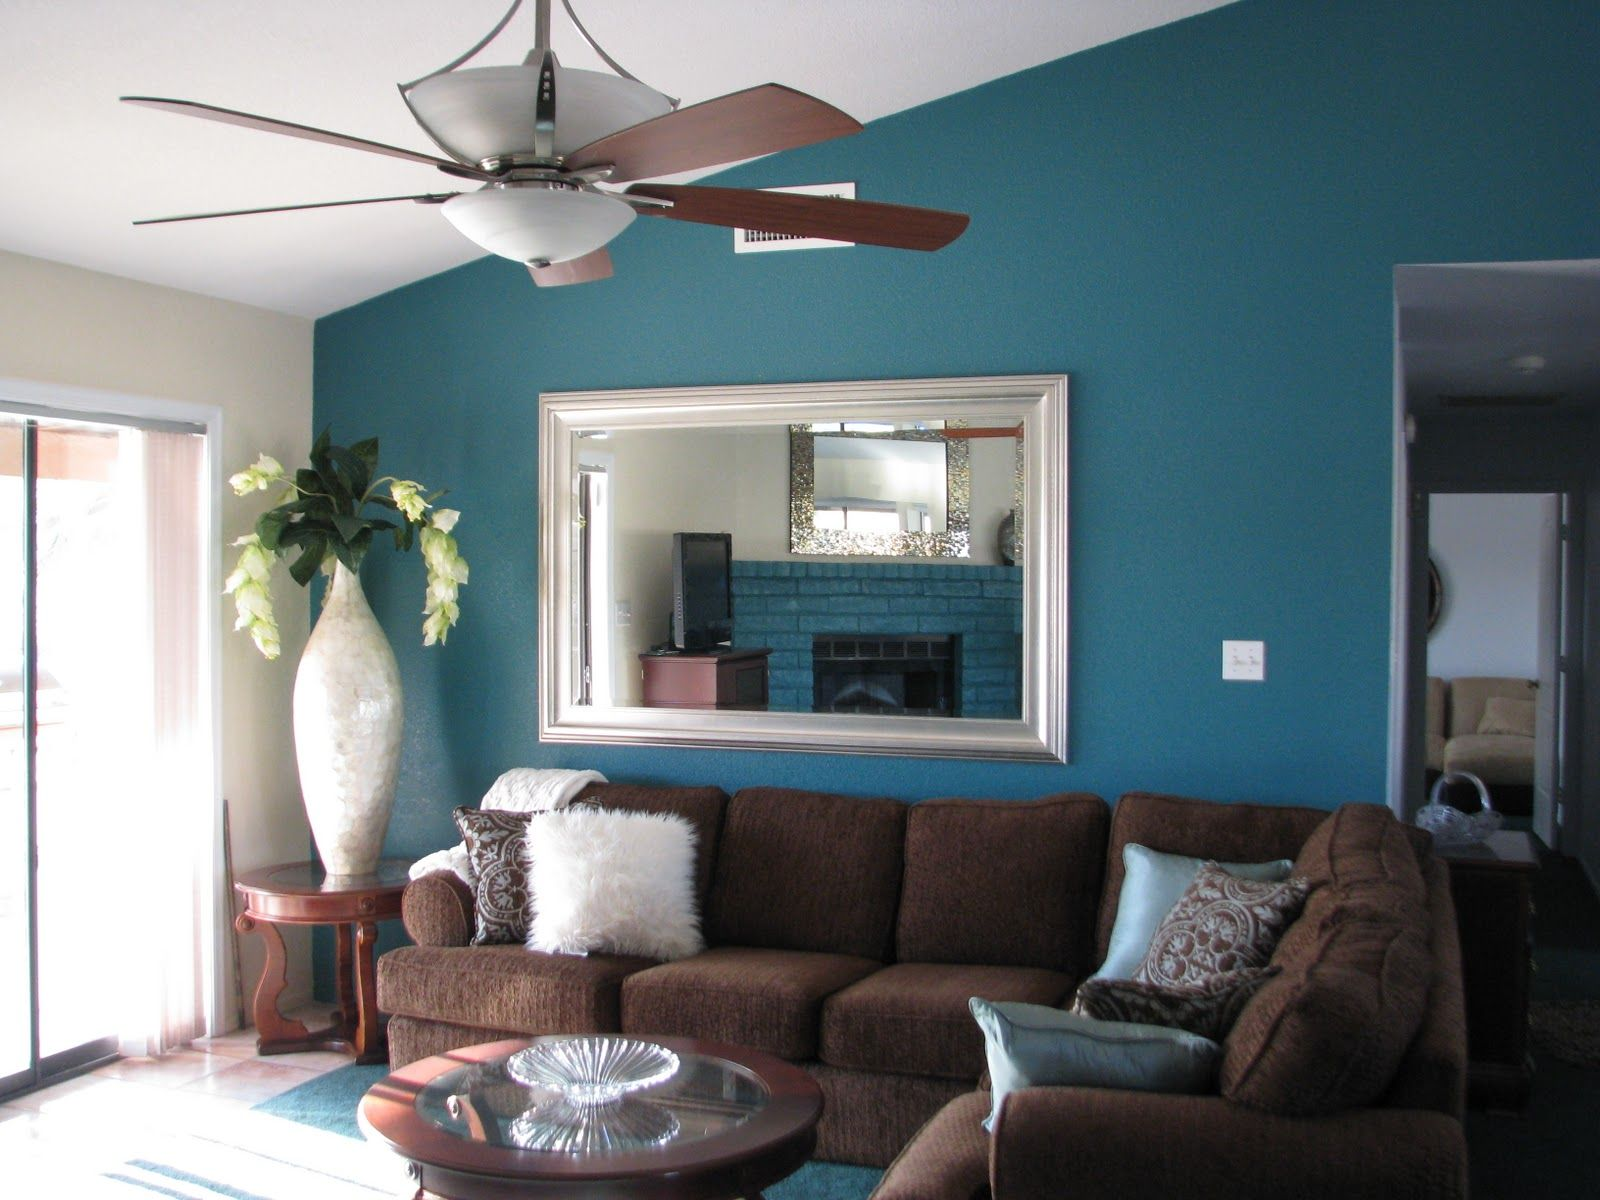 Navy blue living room wall will looks harmonious with dark Chocolate colour wall paint